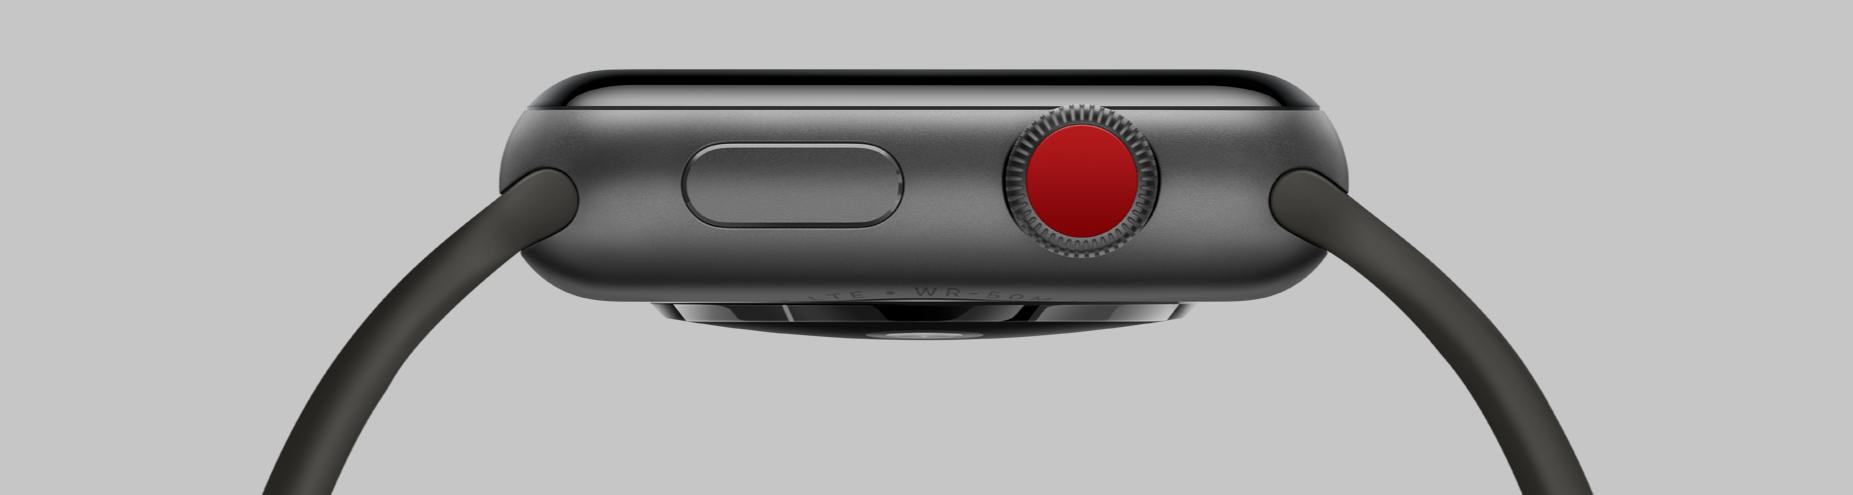 Apple Releases watchOS 4.0.1 With a Fix for WiFi/LTE